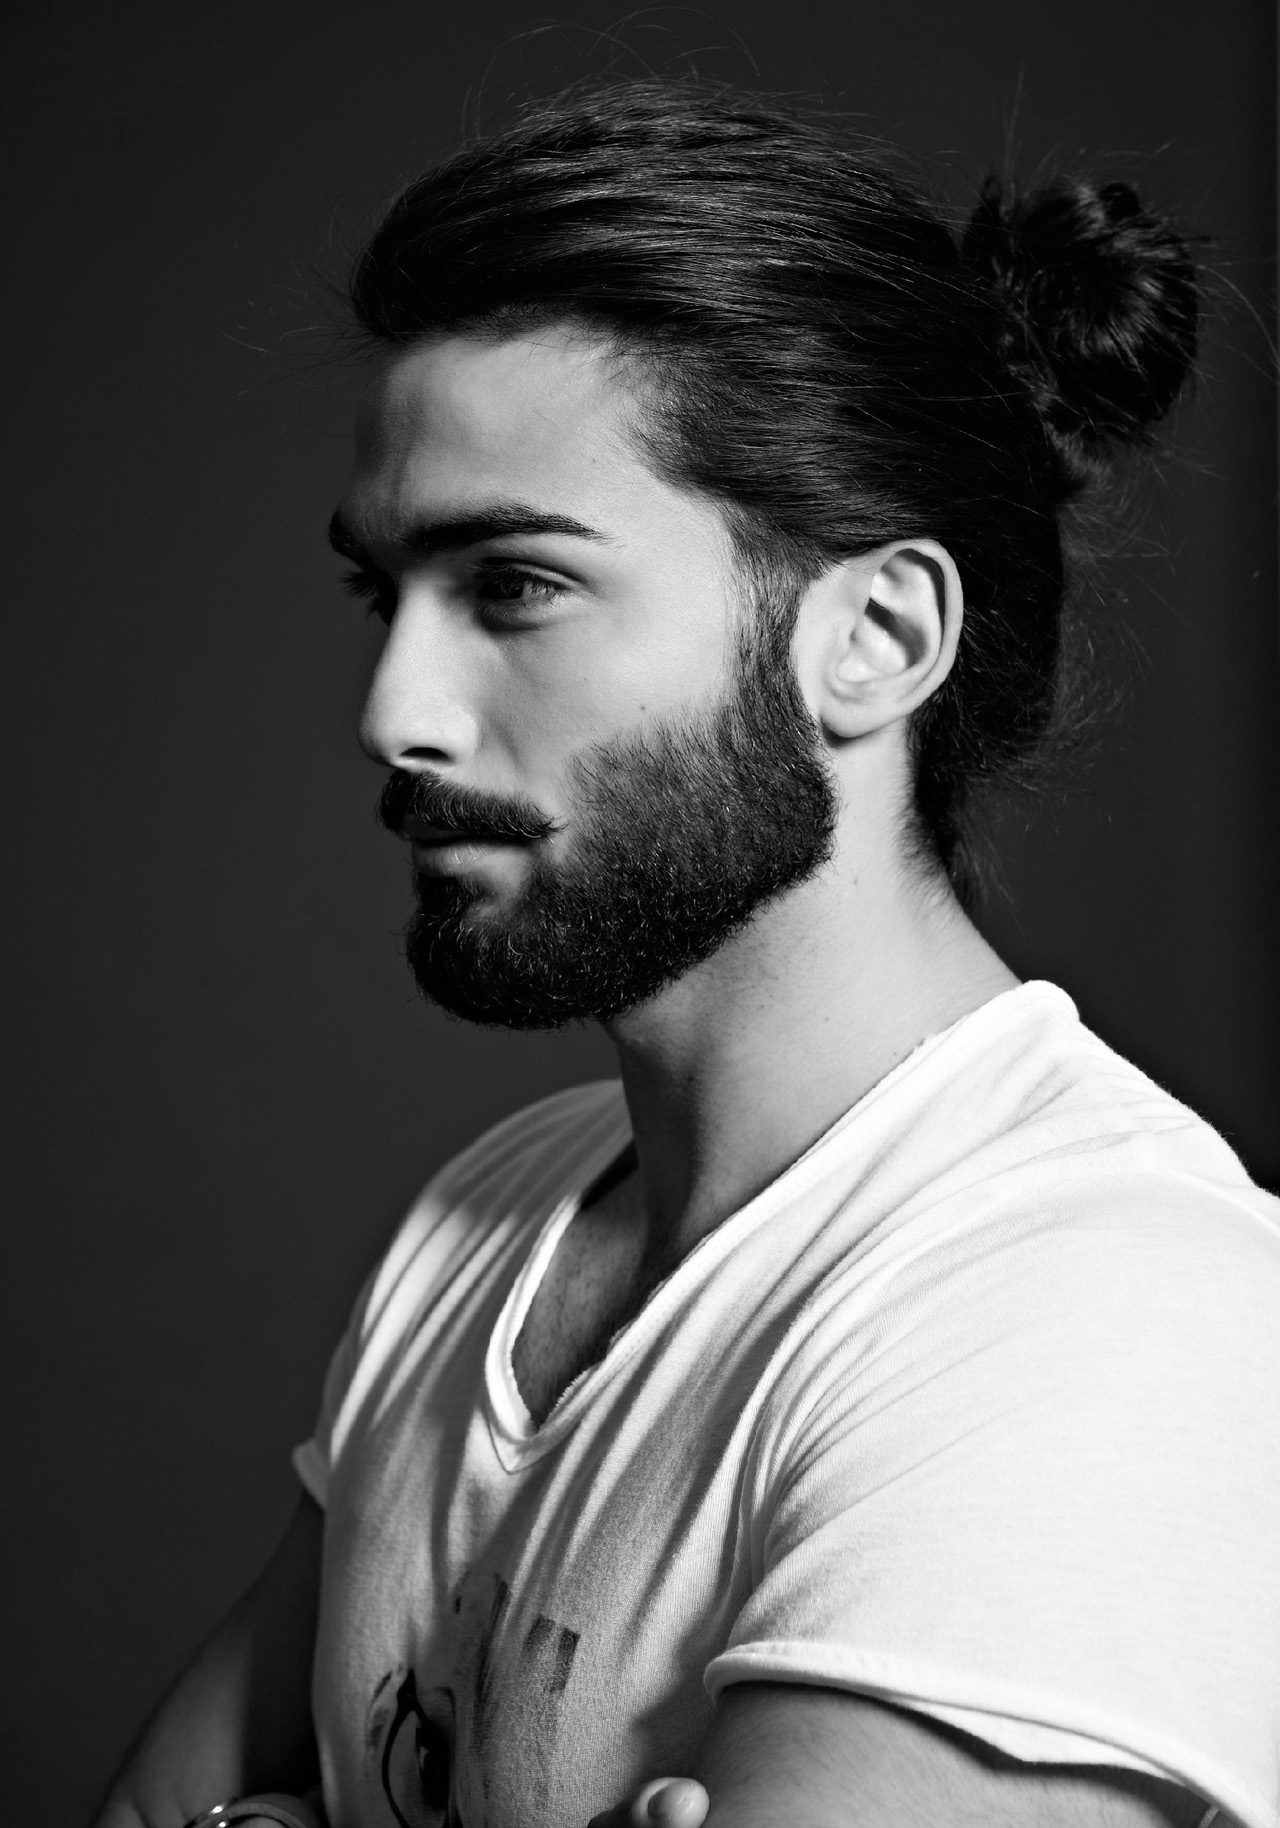 Sexy Top Knot Hairstyles For Men 2015 Long Hairstyles